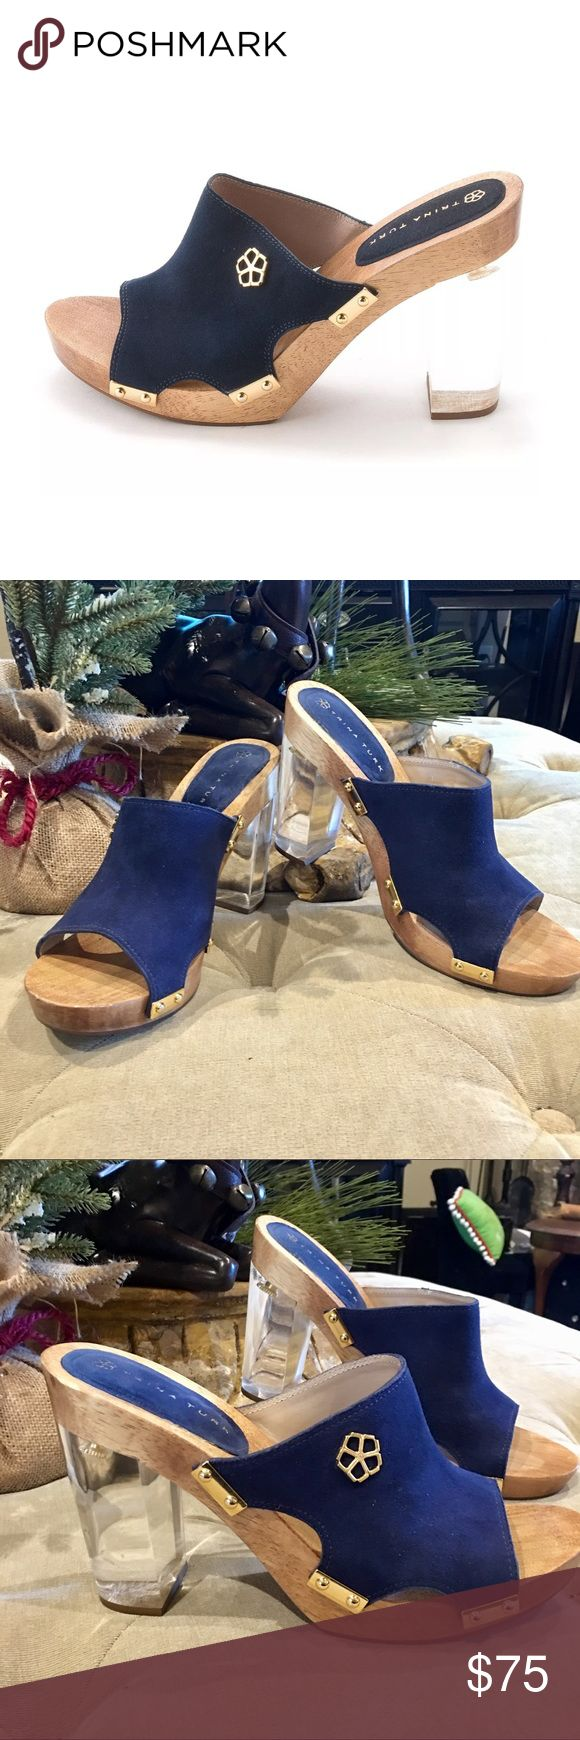 Trina Turk Palm Springs Lucite heel in Indigo 9M ❤❤Trina Turk Palm Springs Lucite heel. Size 9. Super cute shoe. One slight nick on toe of heel. Very slight. See second to last pic. Very minor scuffing on Lucite heel. Overall in great condition. ❤❤ Trina Turk Shoes Mules & Clogs